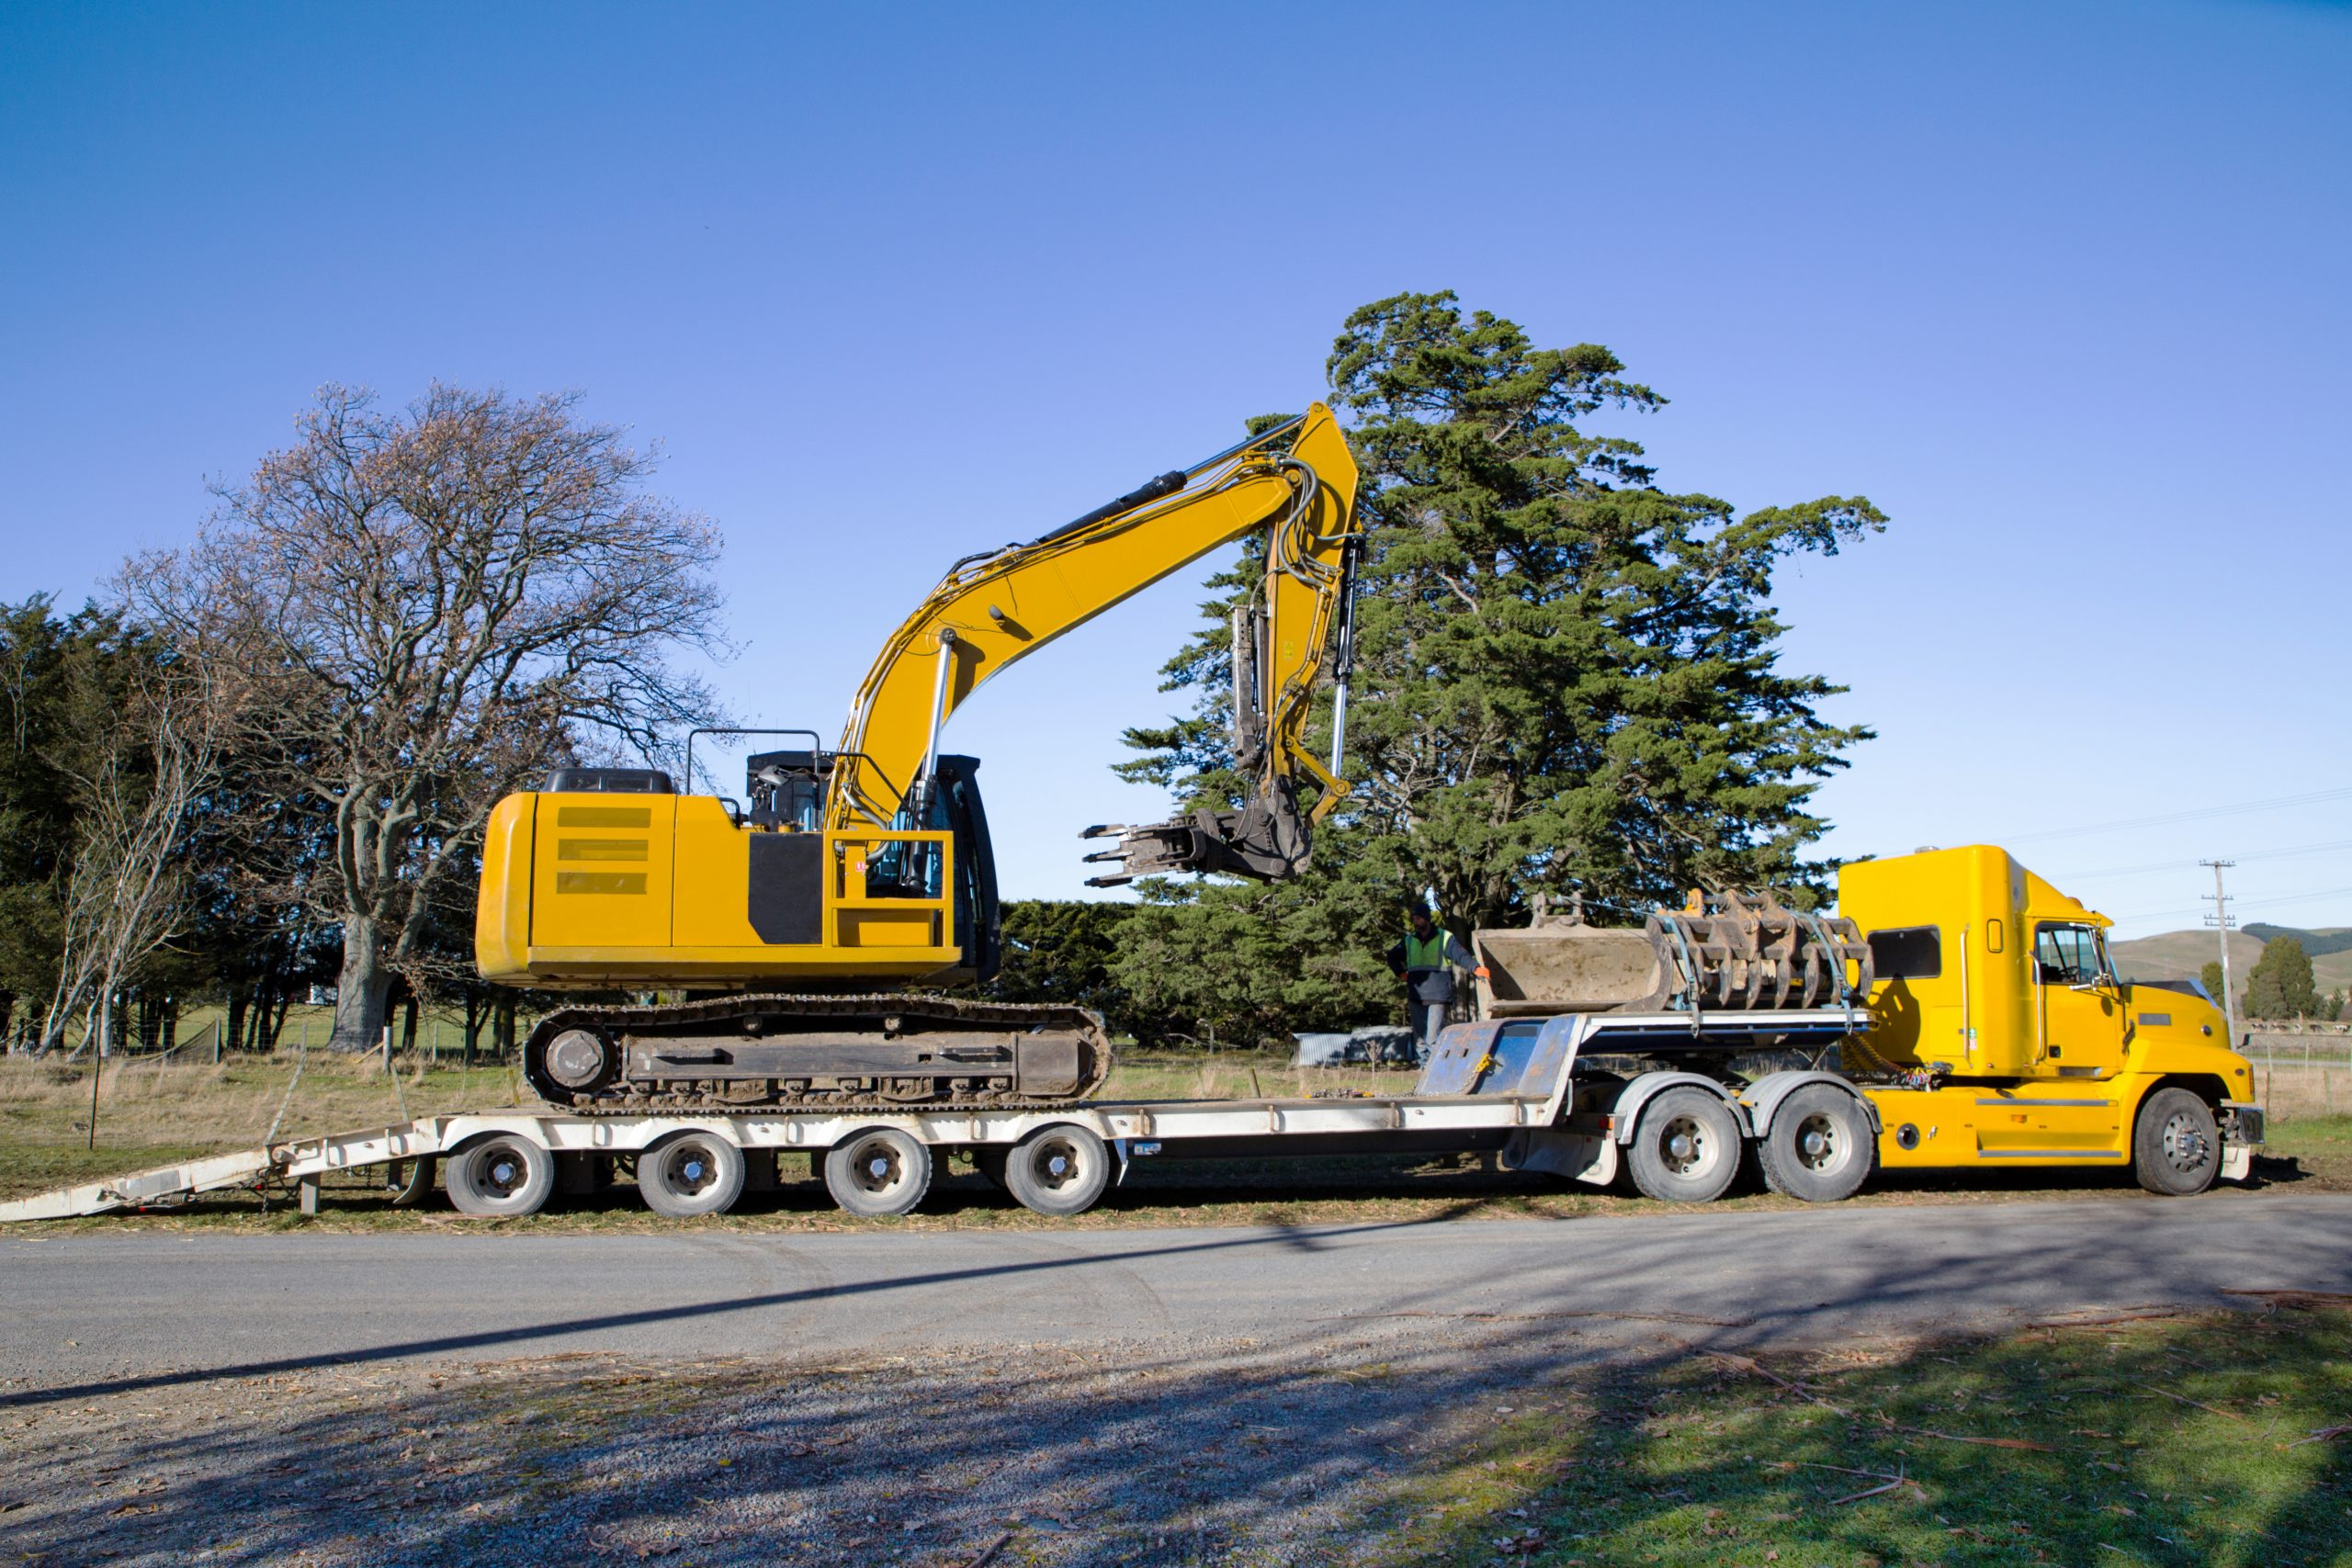 A large yellow digger is delivered to a worksite by a truck and tailer unit in Canterbury, New Zealand